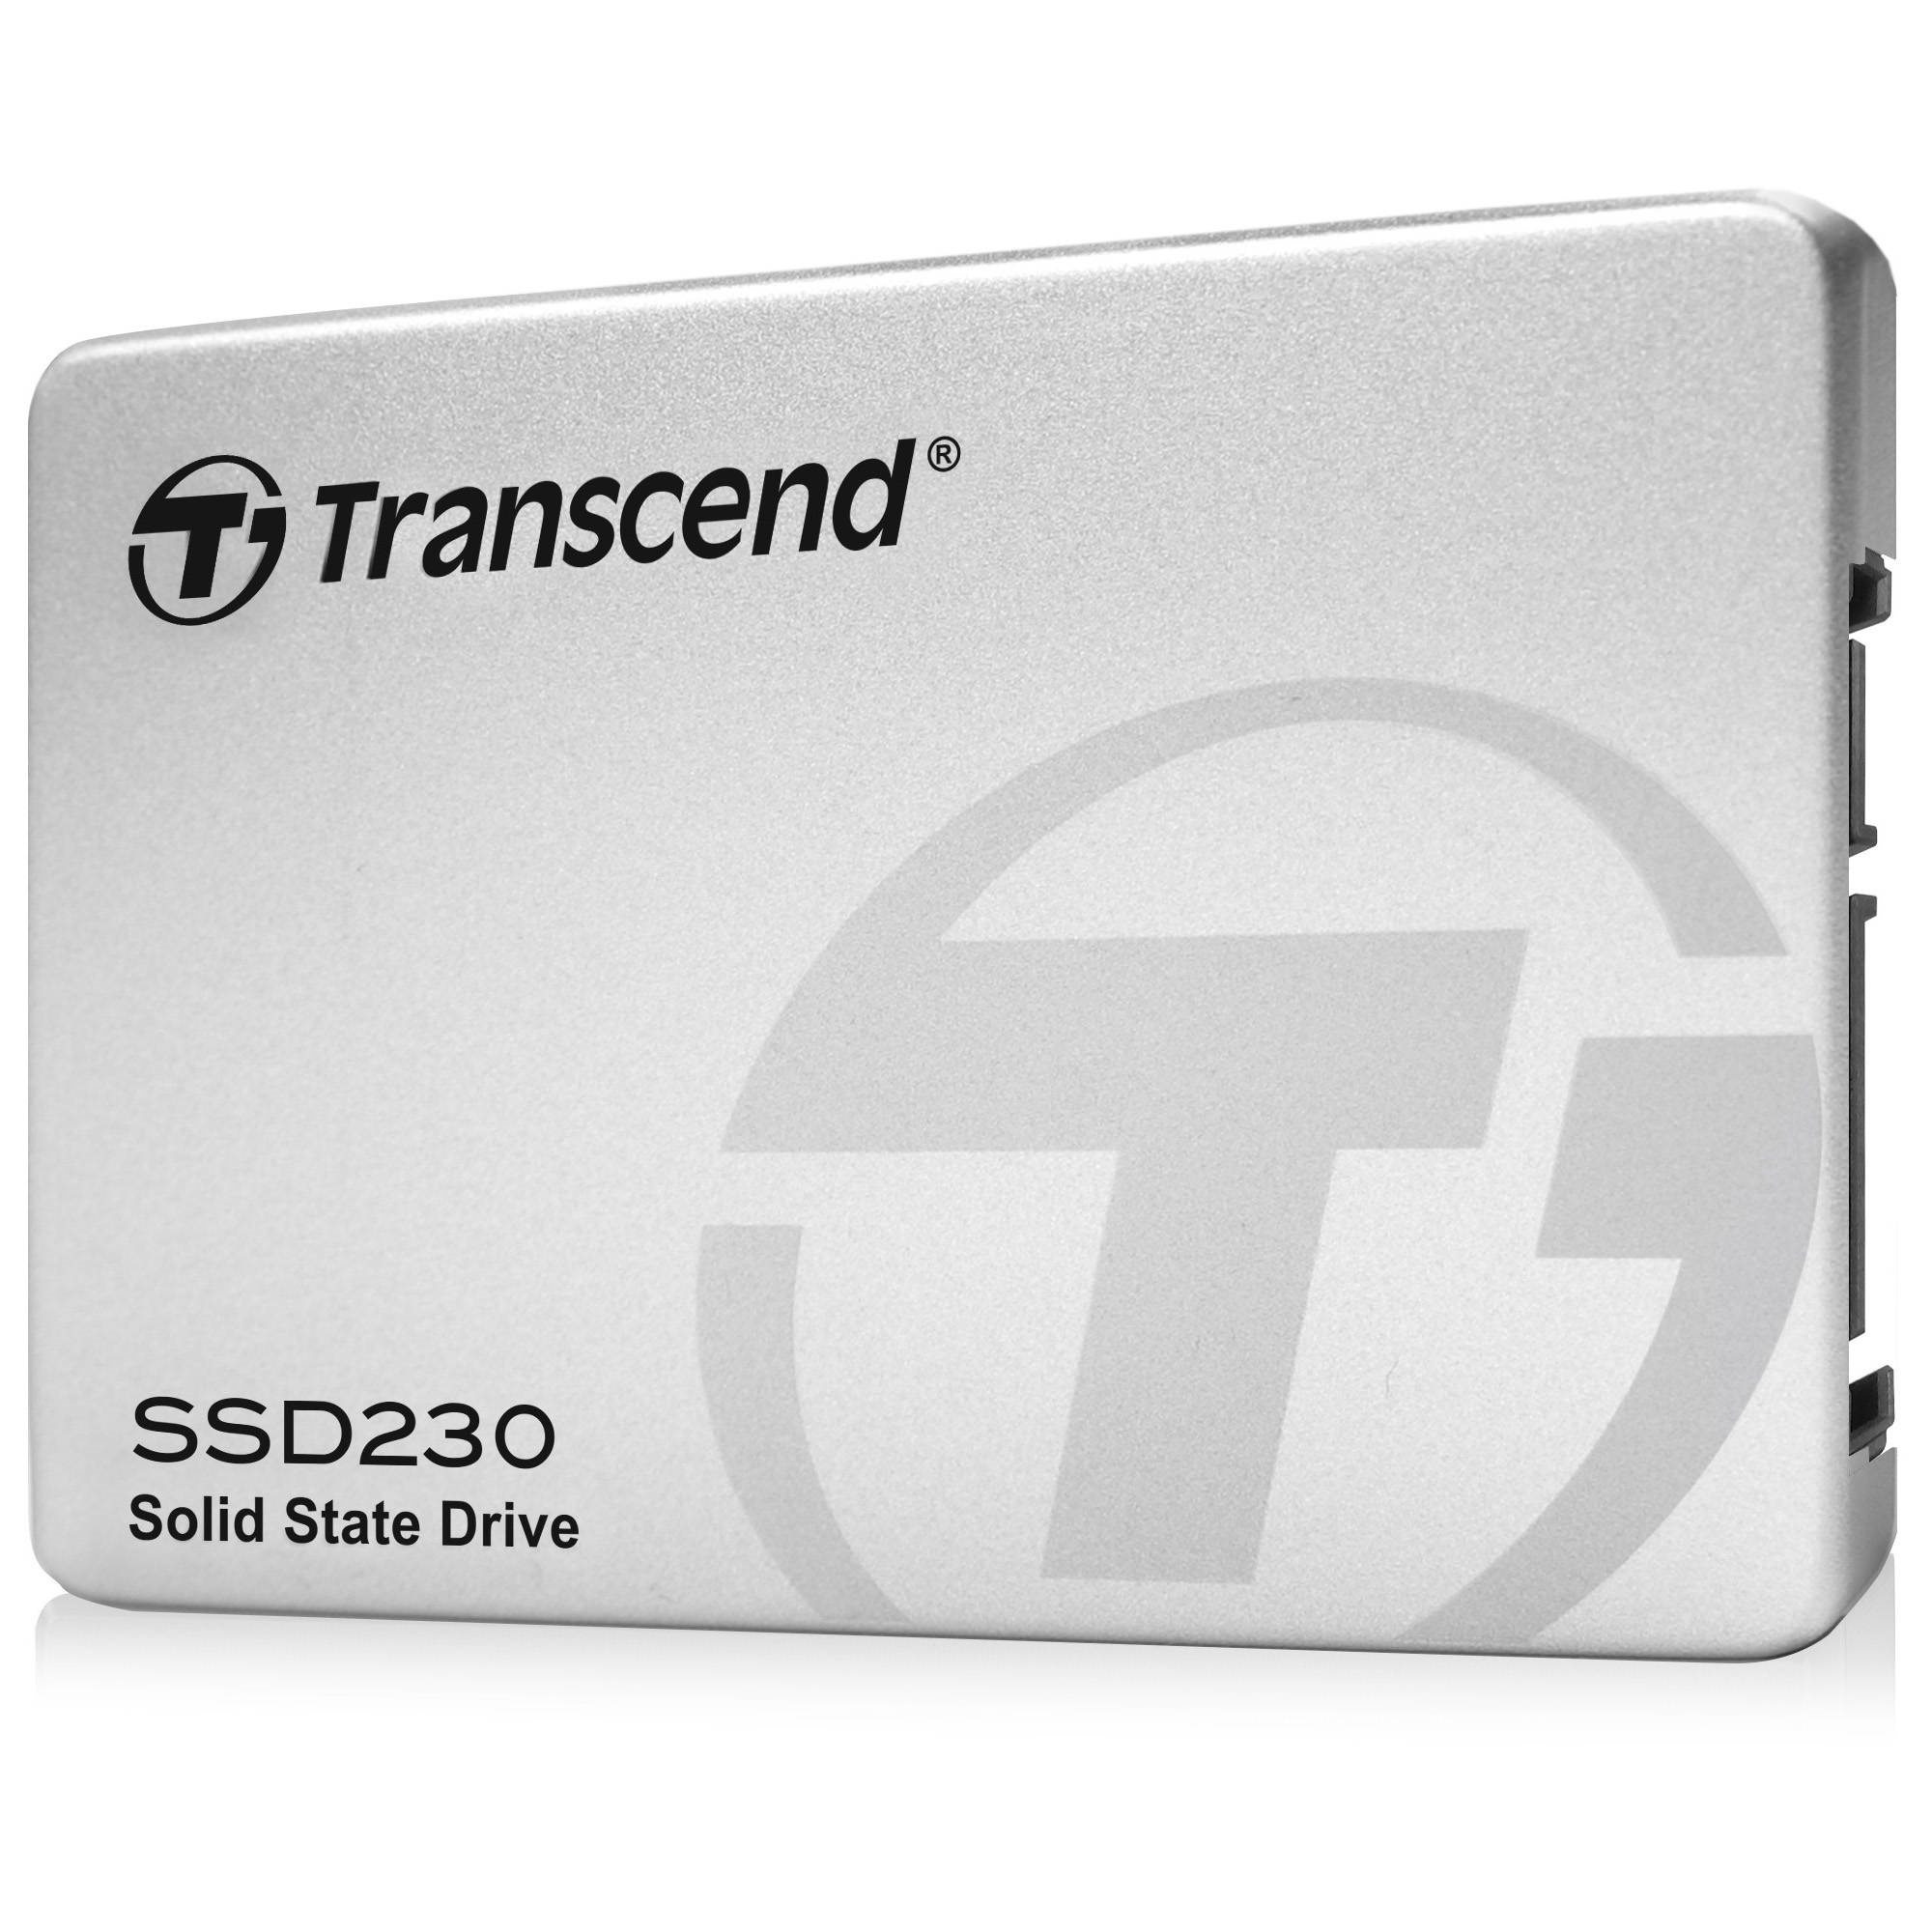 "Transcend 128GB SSD230 SATA III 2.5"" Internal SSD"